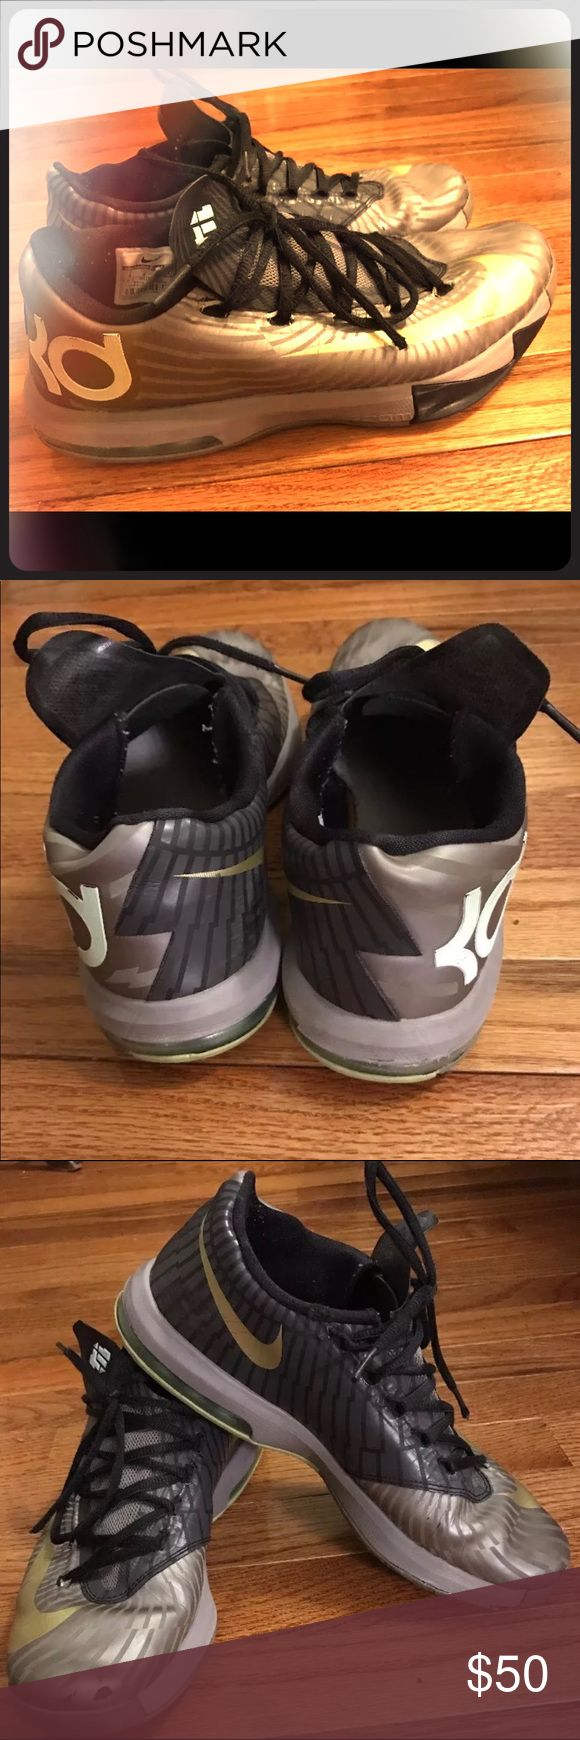 Nike KD precision timing VI men's size 9 sneakers Nike KD VI Metallic Silver and Gold size 9 men's sneakers. No box. Does have some signs of wear. Please look at photos! 👟🏀💙 Nike Shoes Athletic Shoes